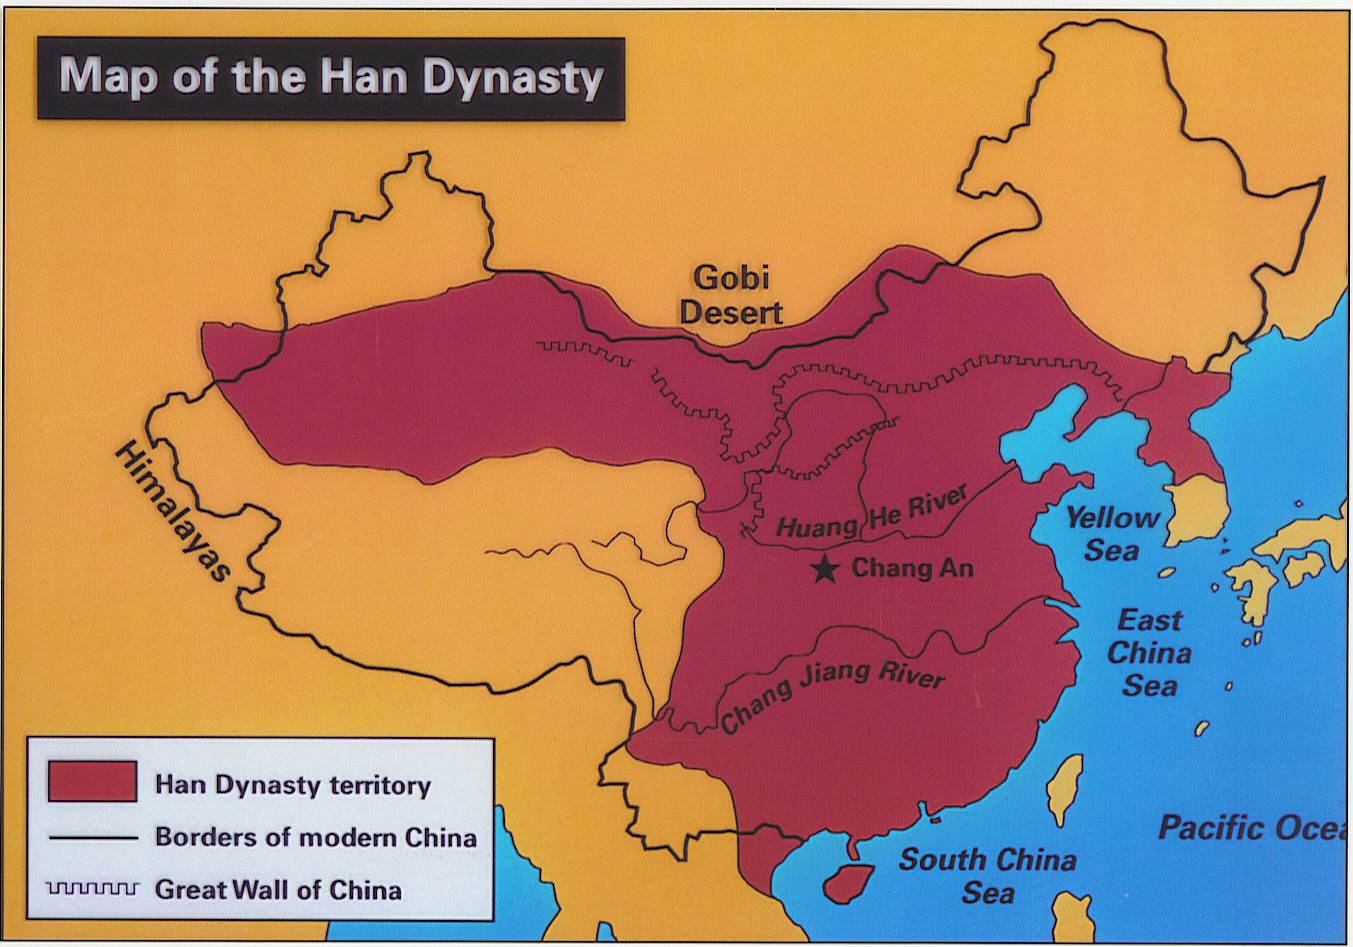 Ancient world history wiki licensed for non commercial for Chinese in the area